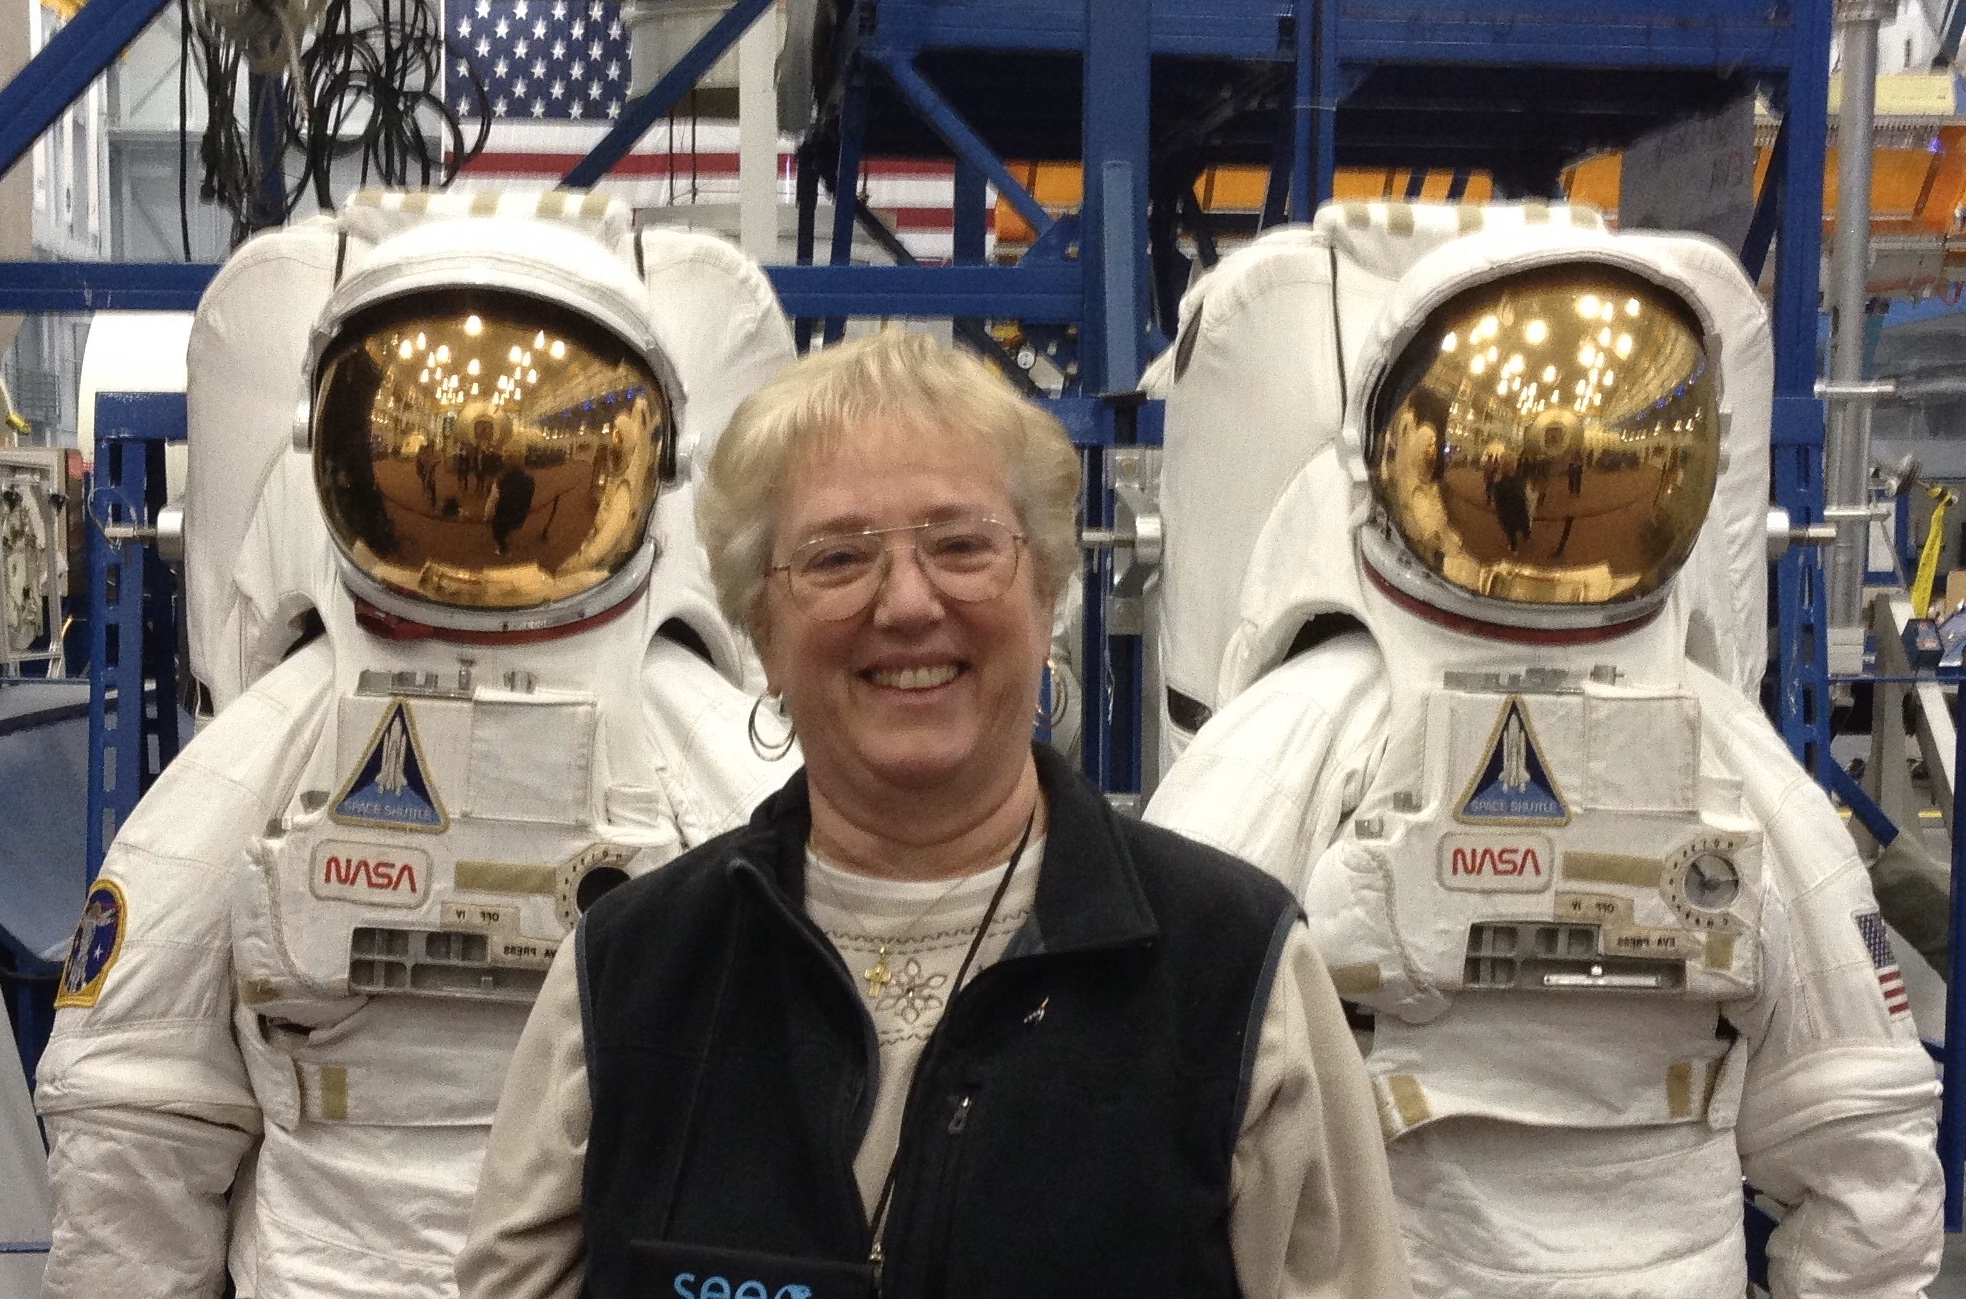 Sharon Eggleston poses with astronaut suits at Johnson Space Center